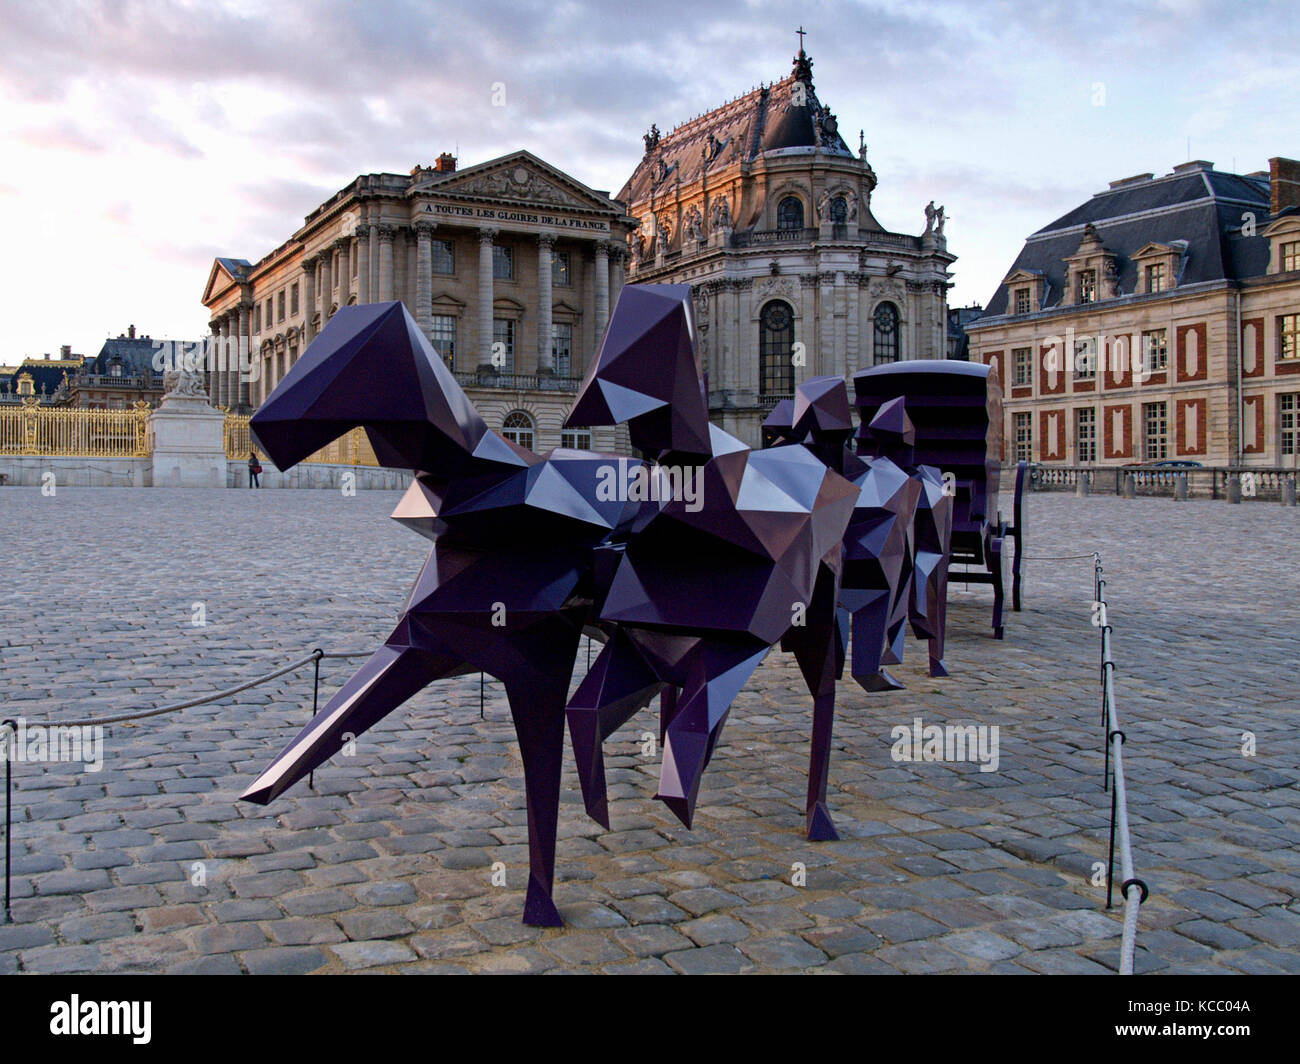 VERSAILLES FRANCE - XAVIER VEILHAN -  HORSES COACH - CHATEAU DE VERSAILLES - CONTEMPORARY ART- VERSAILLES CASTLE Stock Photo